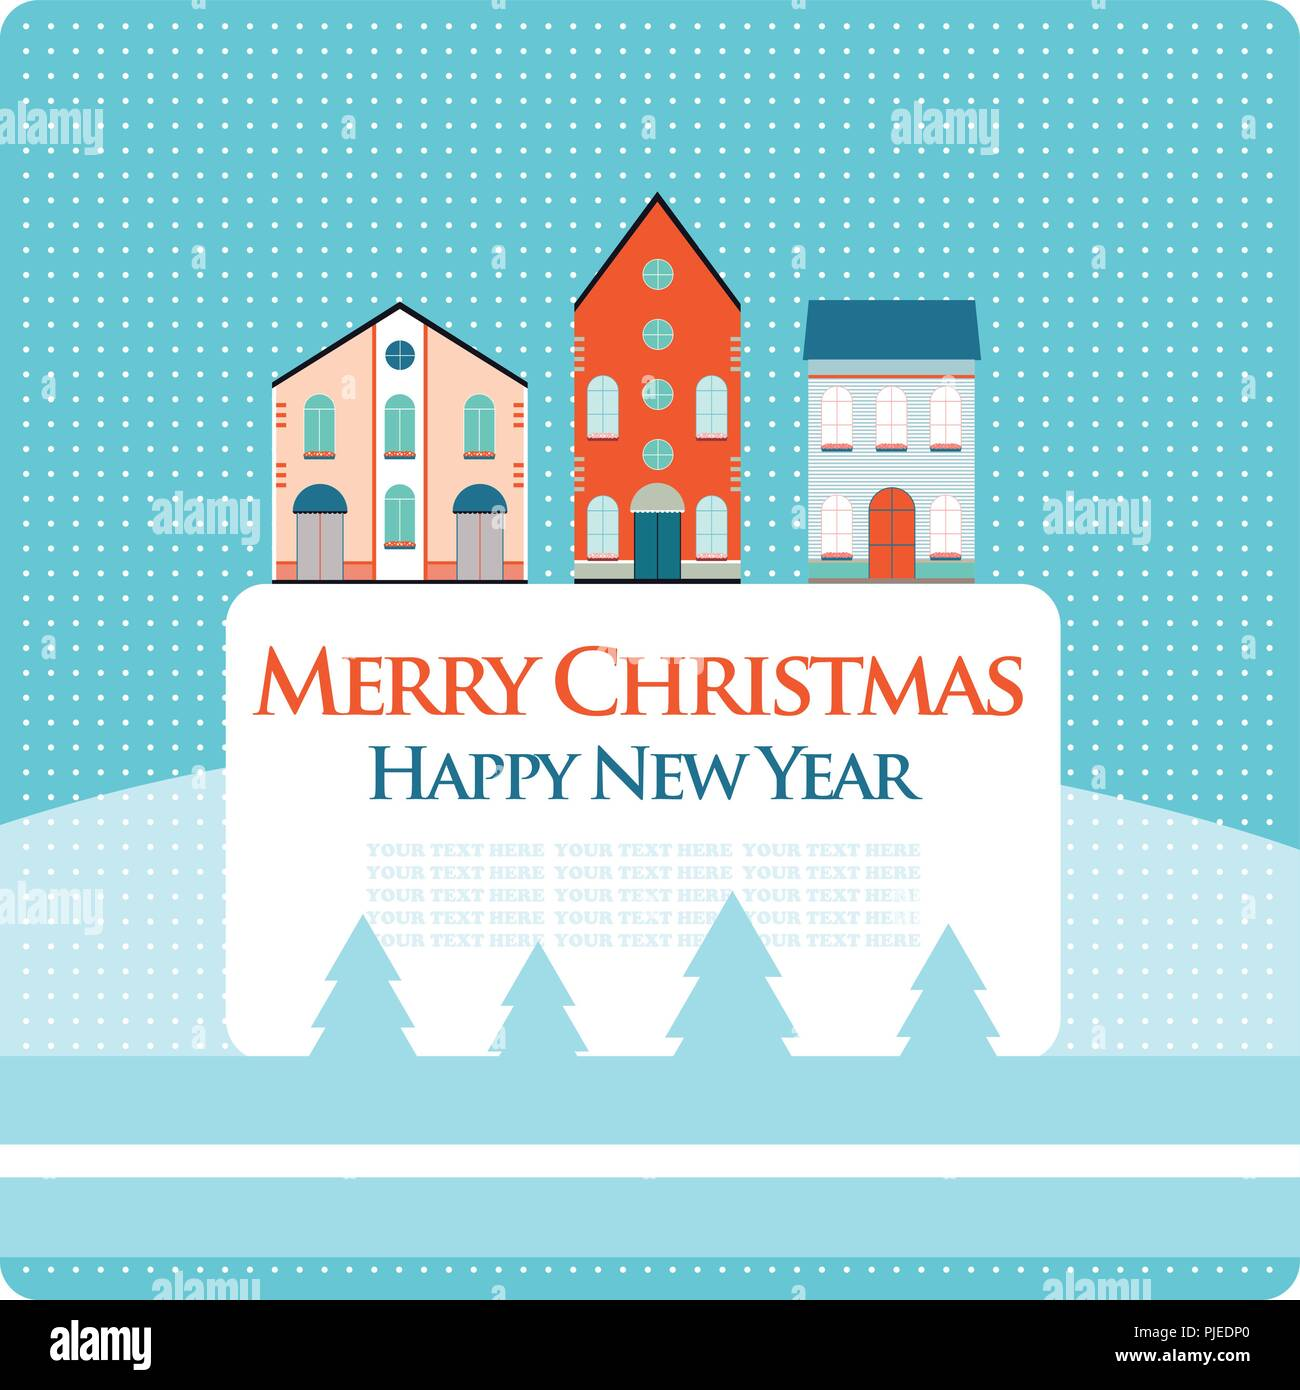 christmas new year greeting card with street view with lovely houses in small town